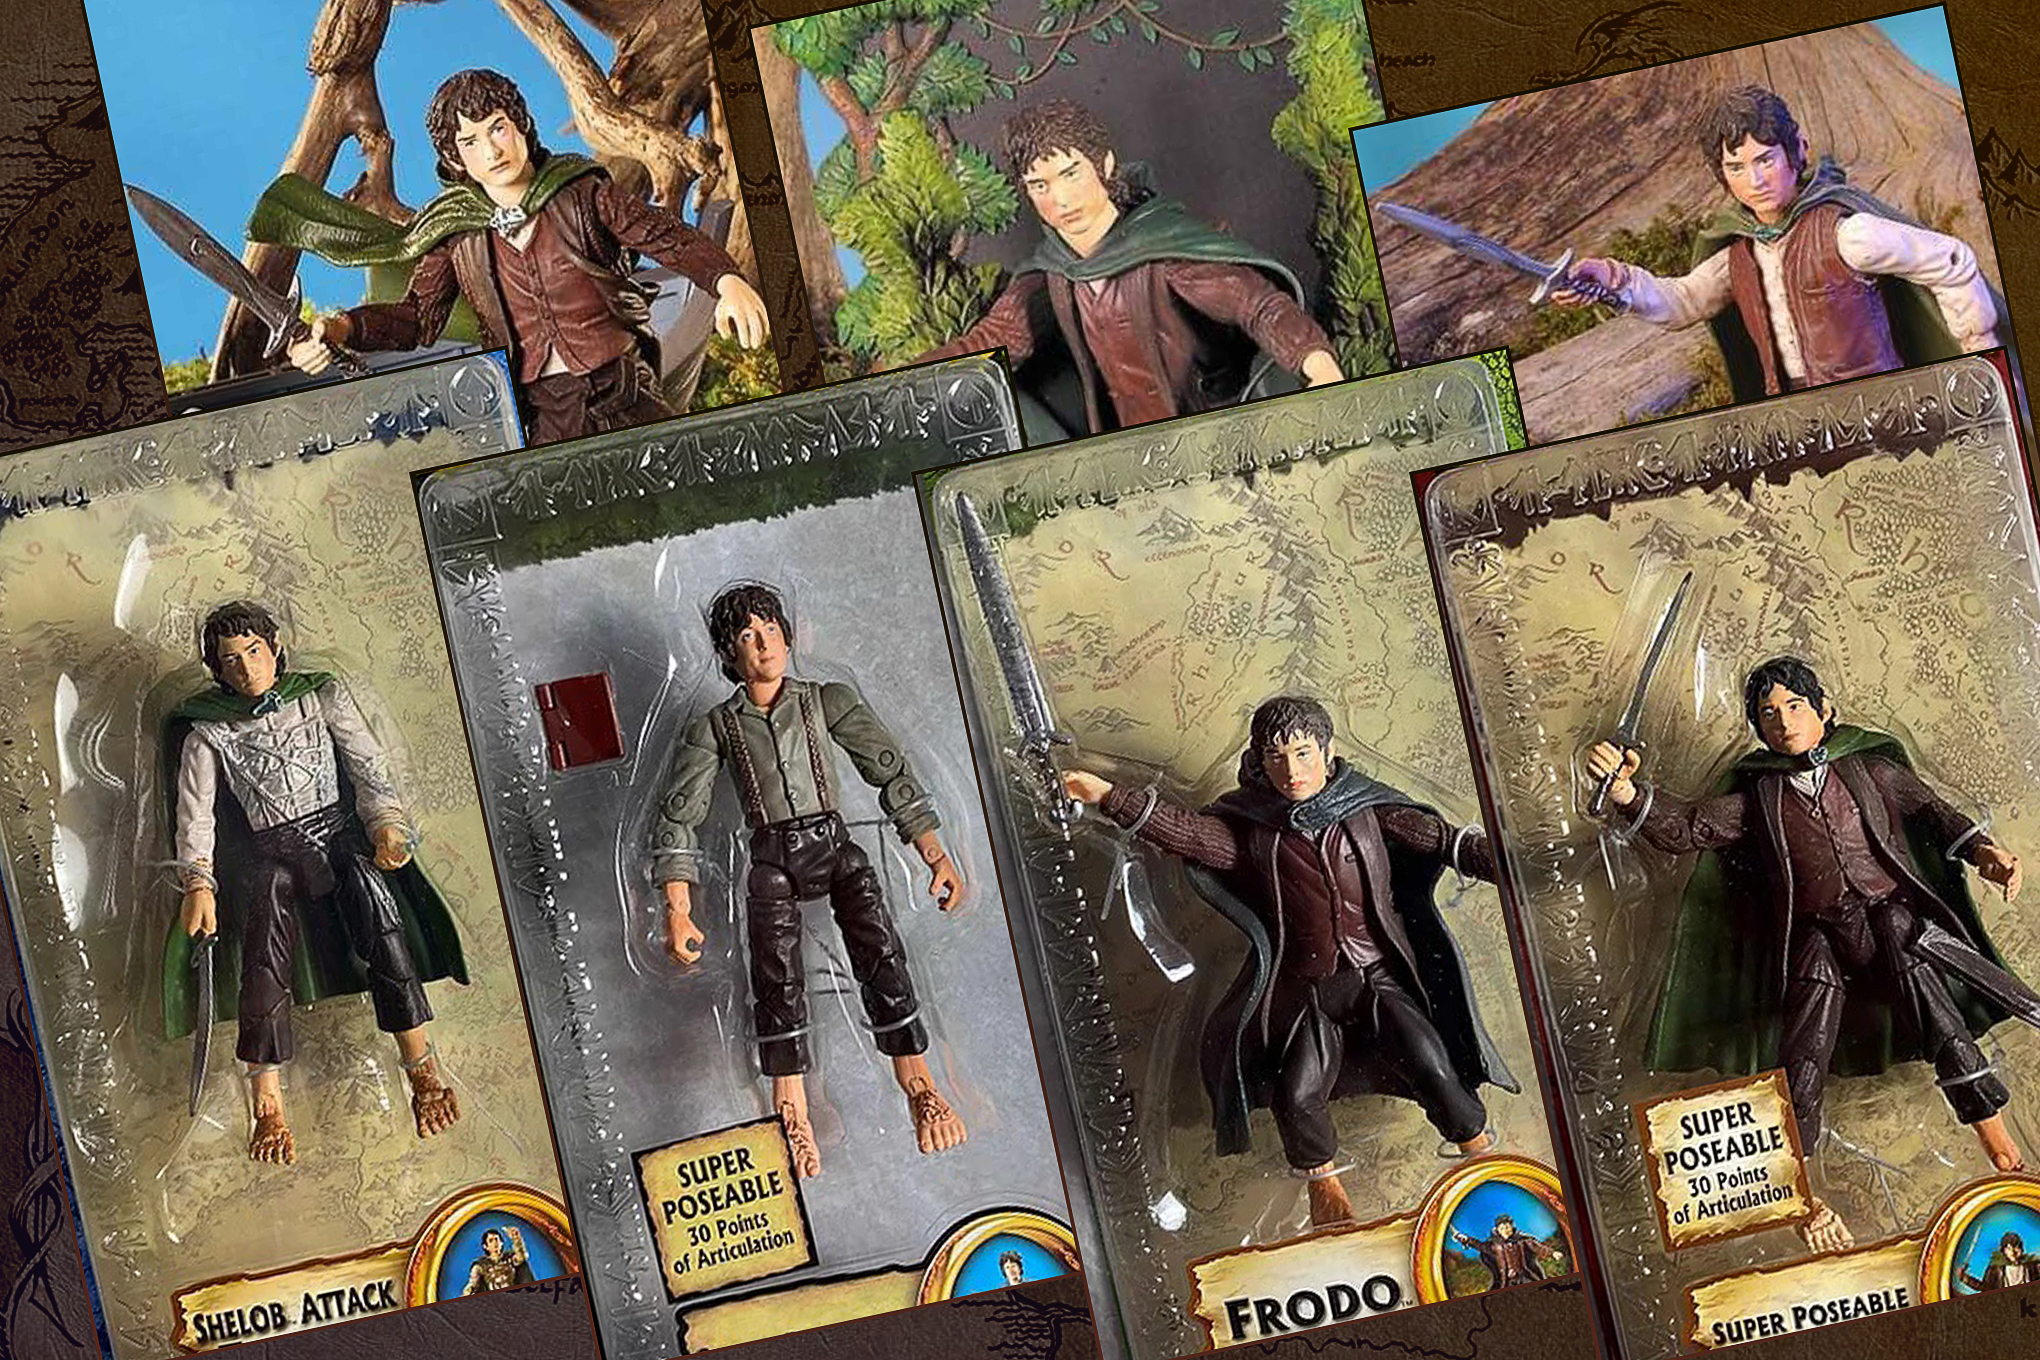 Graphic featuring seven different Frodo action figures from the Lord of the Rings movies